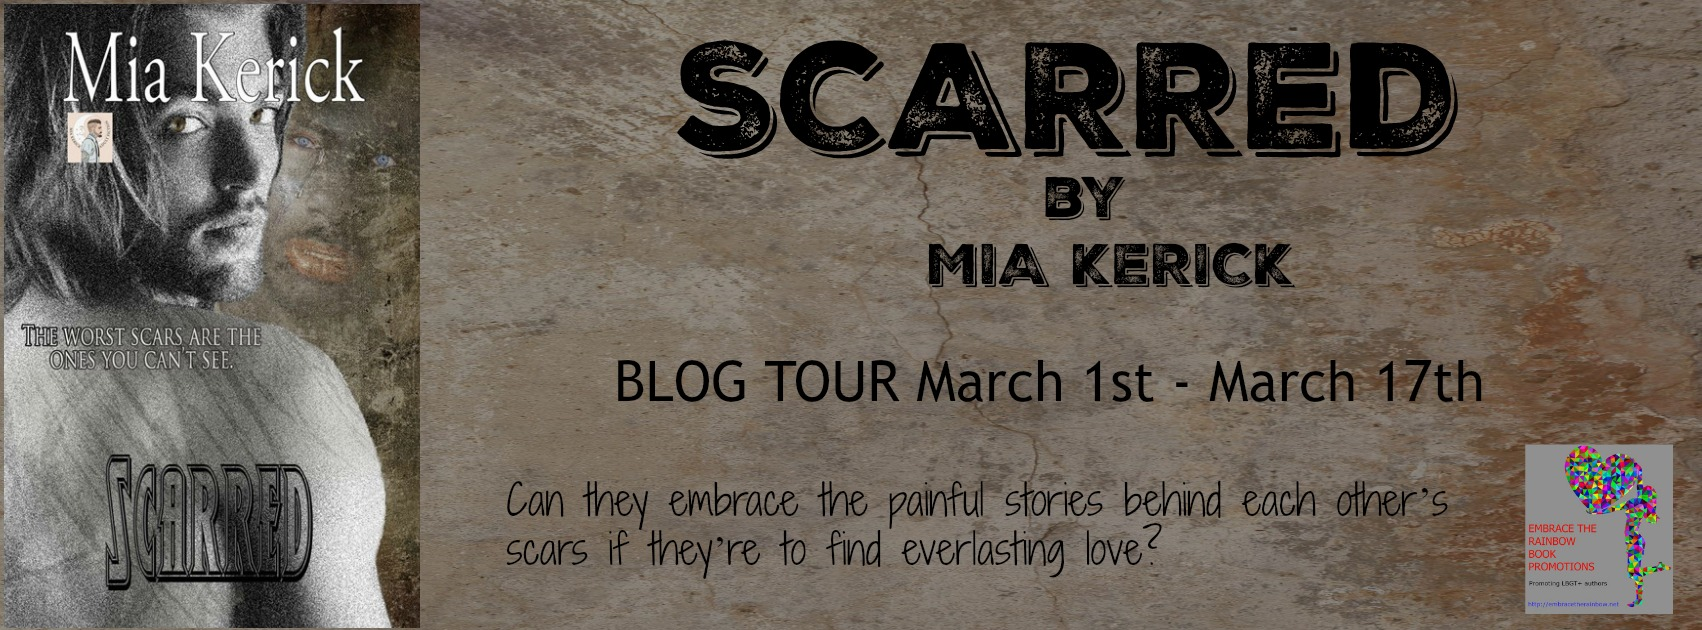 Blog Tour: Exclusive Excerpt & Giveaway Scarred by Mia Kerick